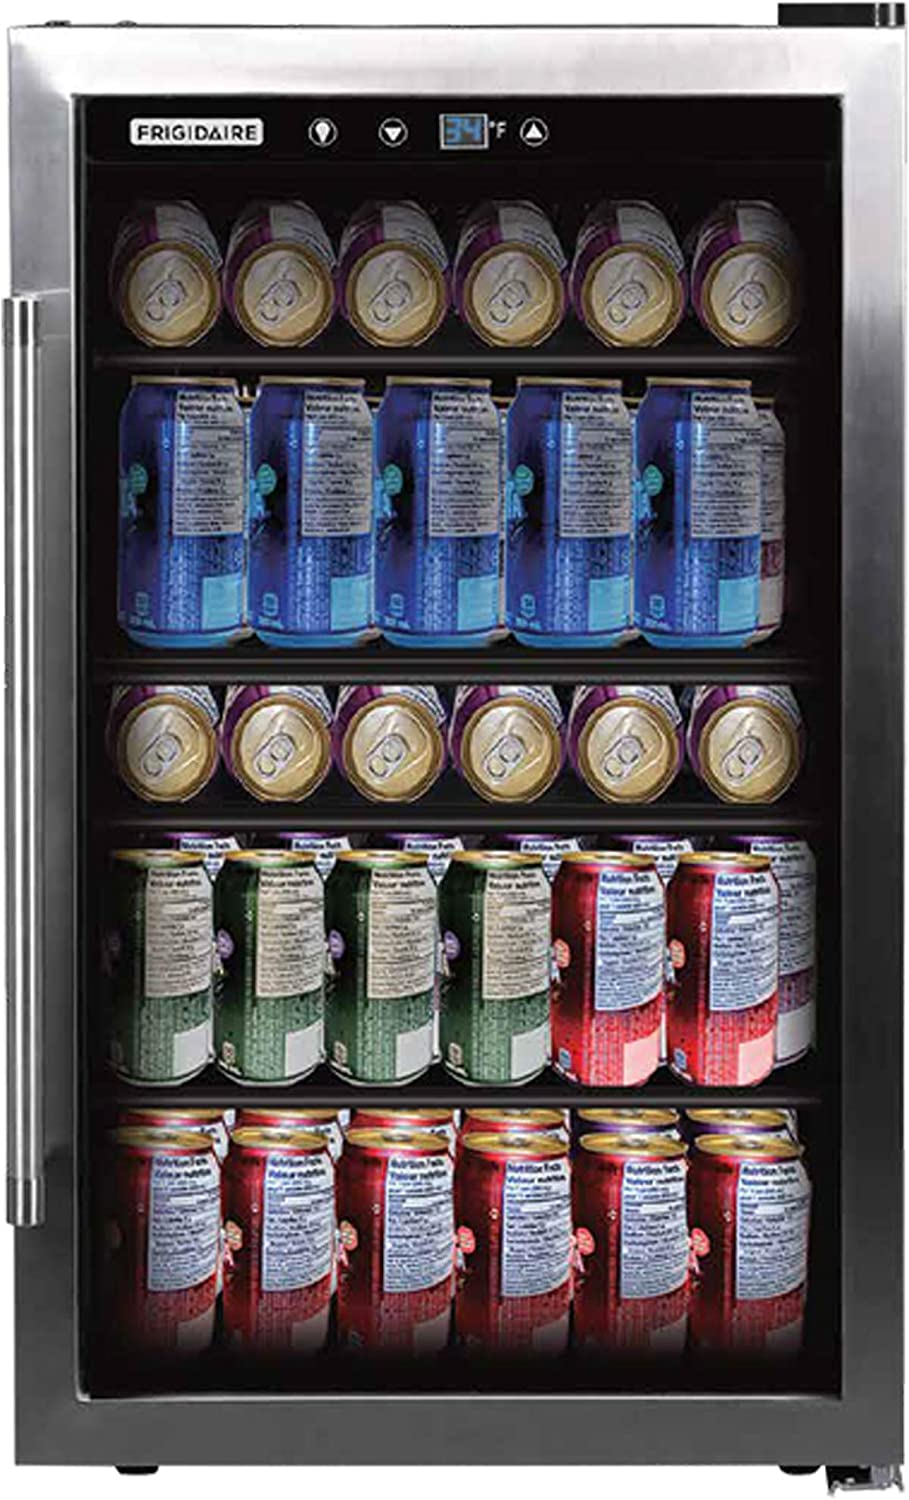 Frigidaire EFMIS155 Beverage Center, 126-CAN